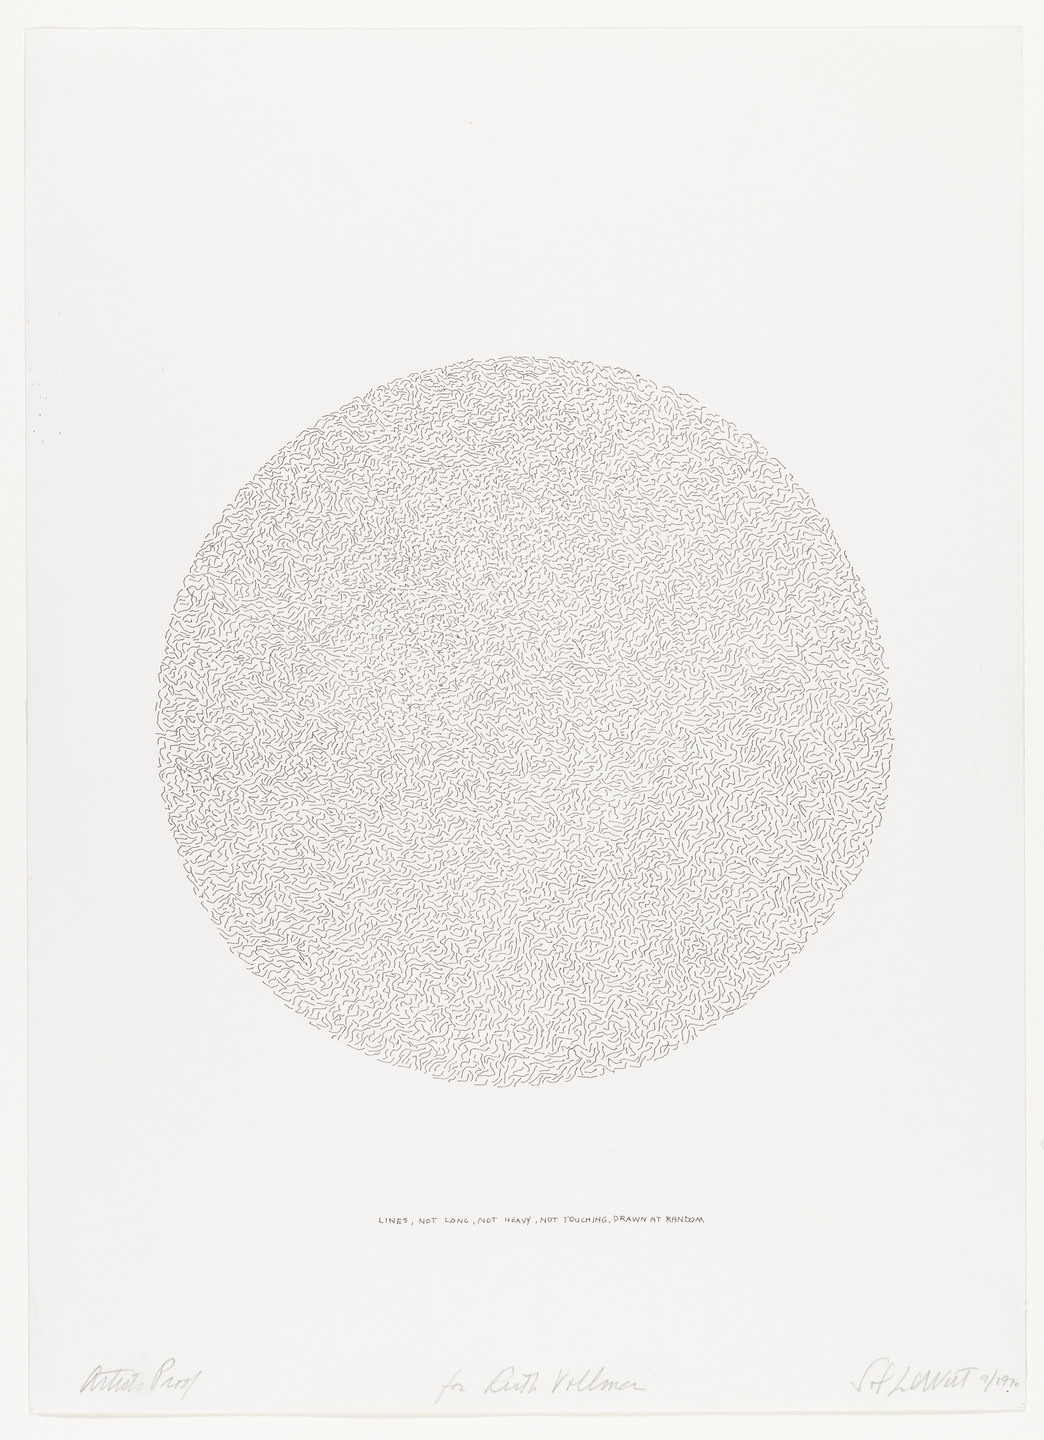 Sol LeWitt. Lines, Not Long, Not Heavy, Not Touching, Drawn at Random (Circle). 1970